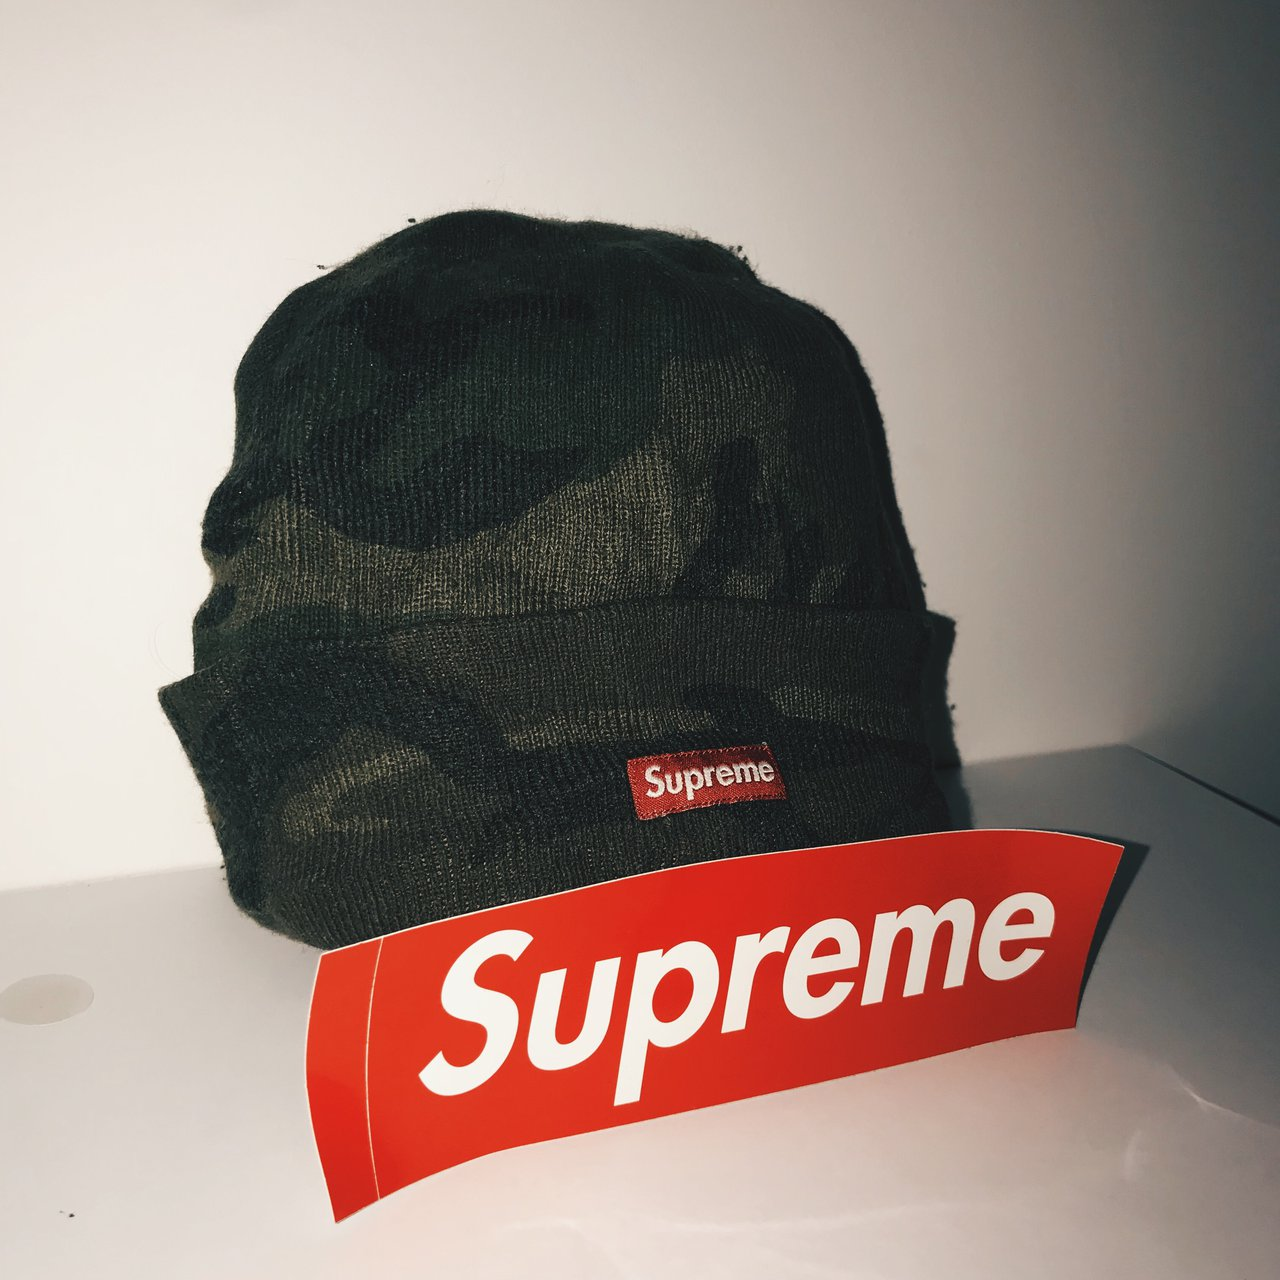 3be3a01a18e Supreme camo beanie hat selling cheap! Good for winter From - Depop